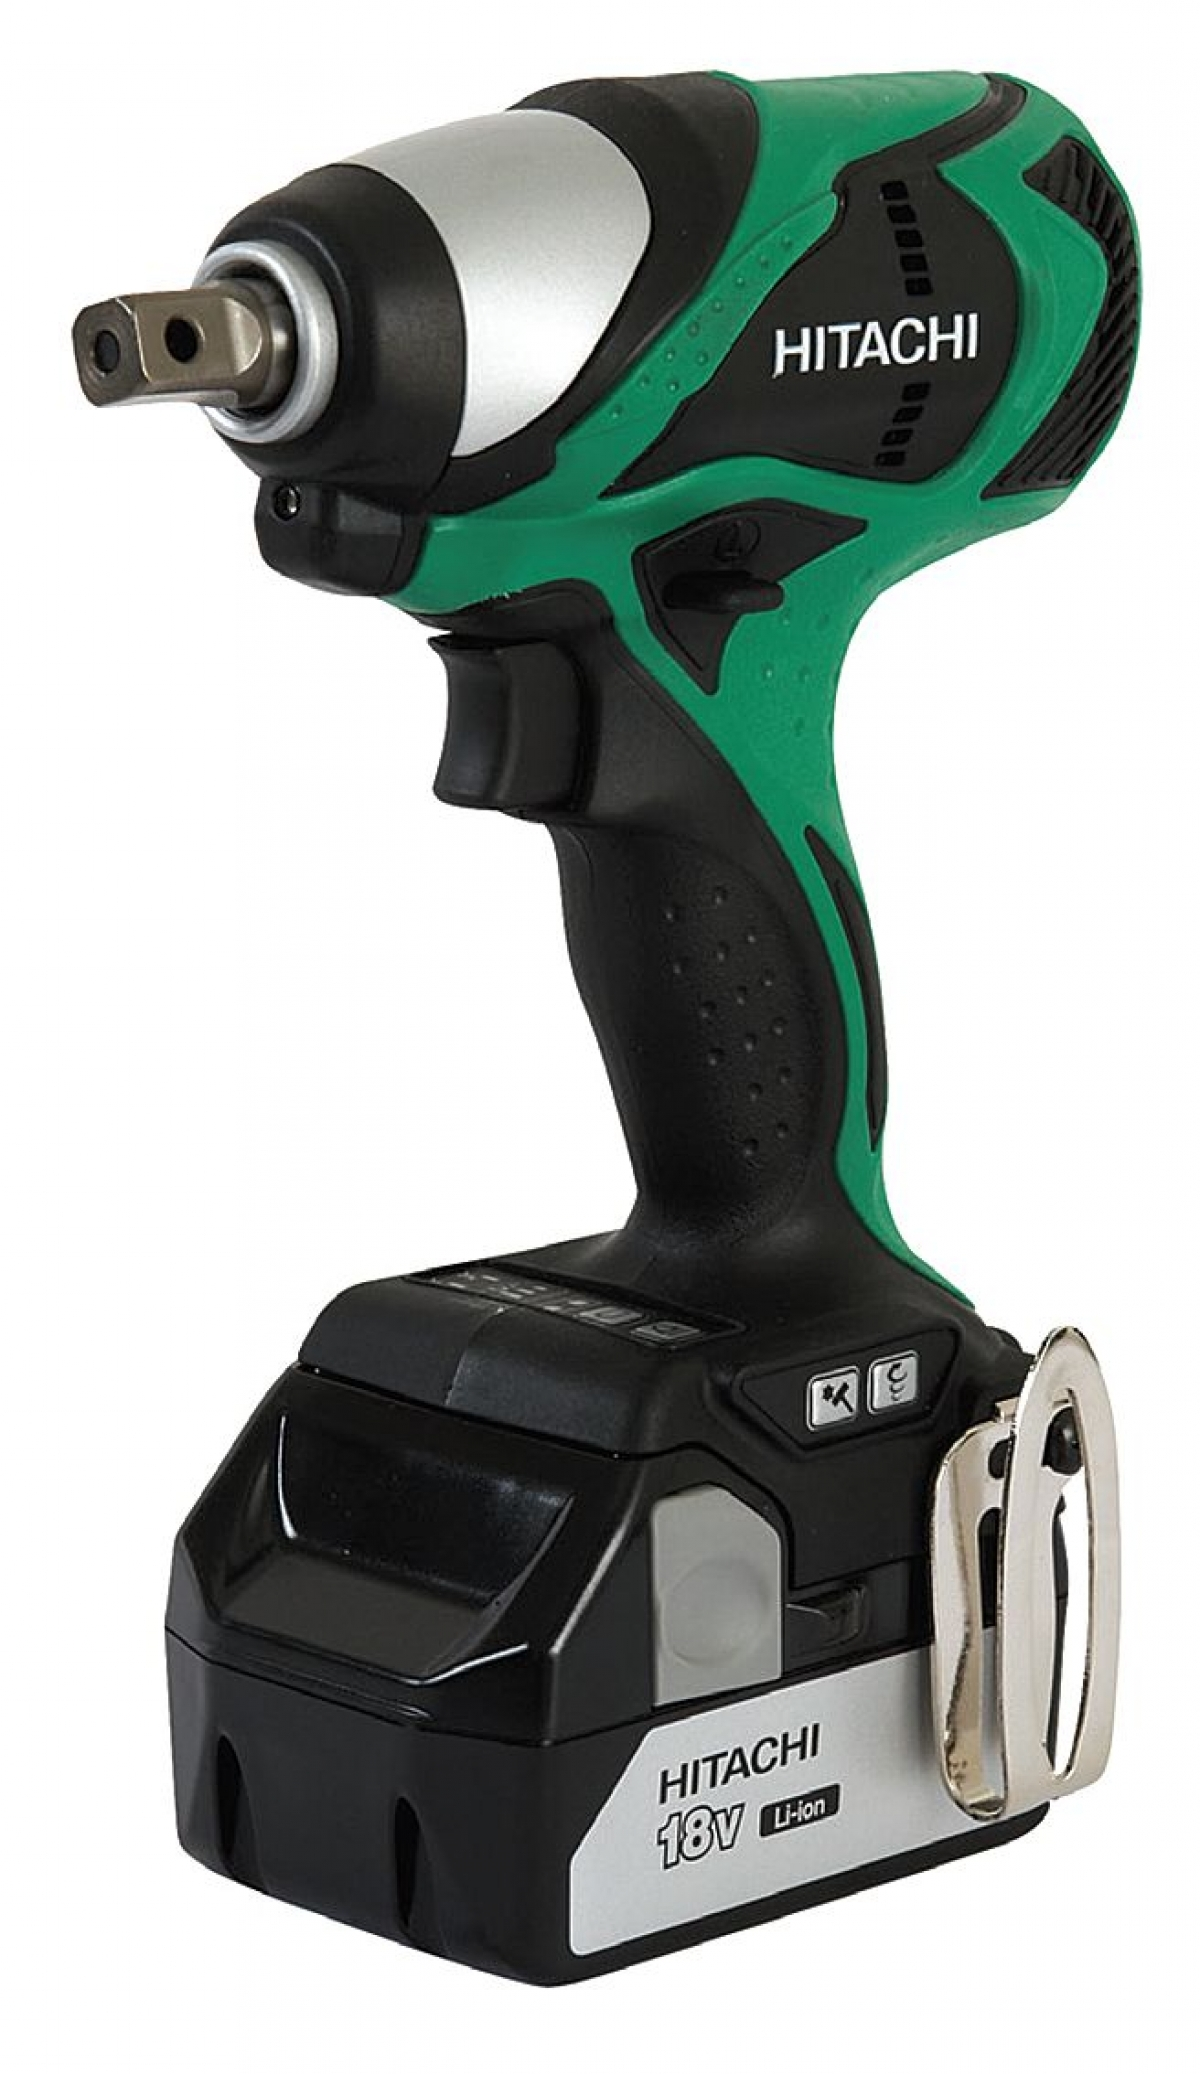 Cordless Tools : HITACHI 18V CORDLESS IMPACT WRENCHES WITH